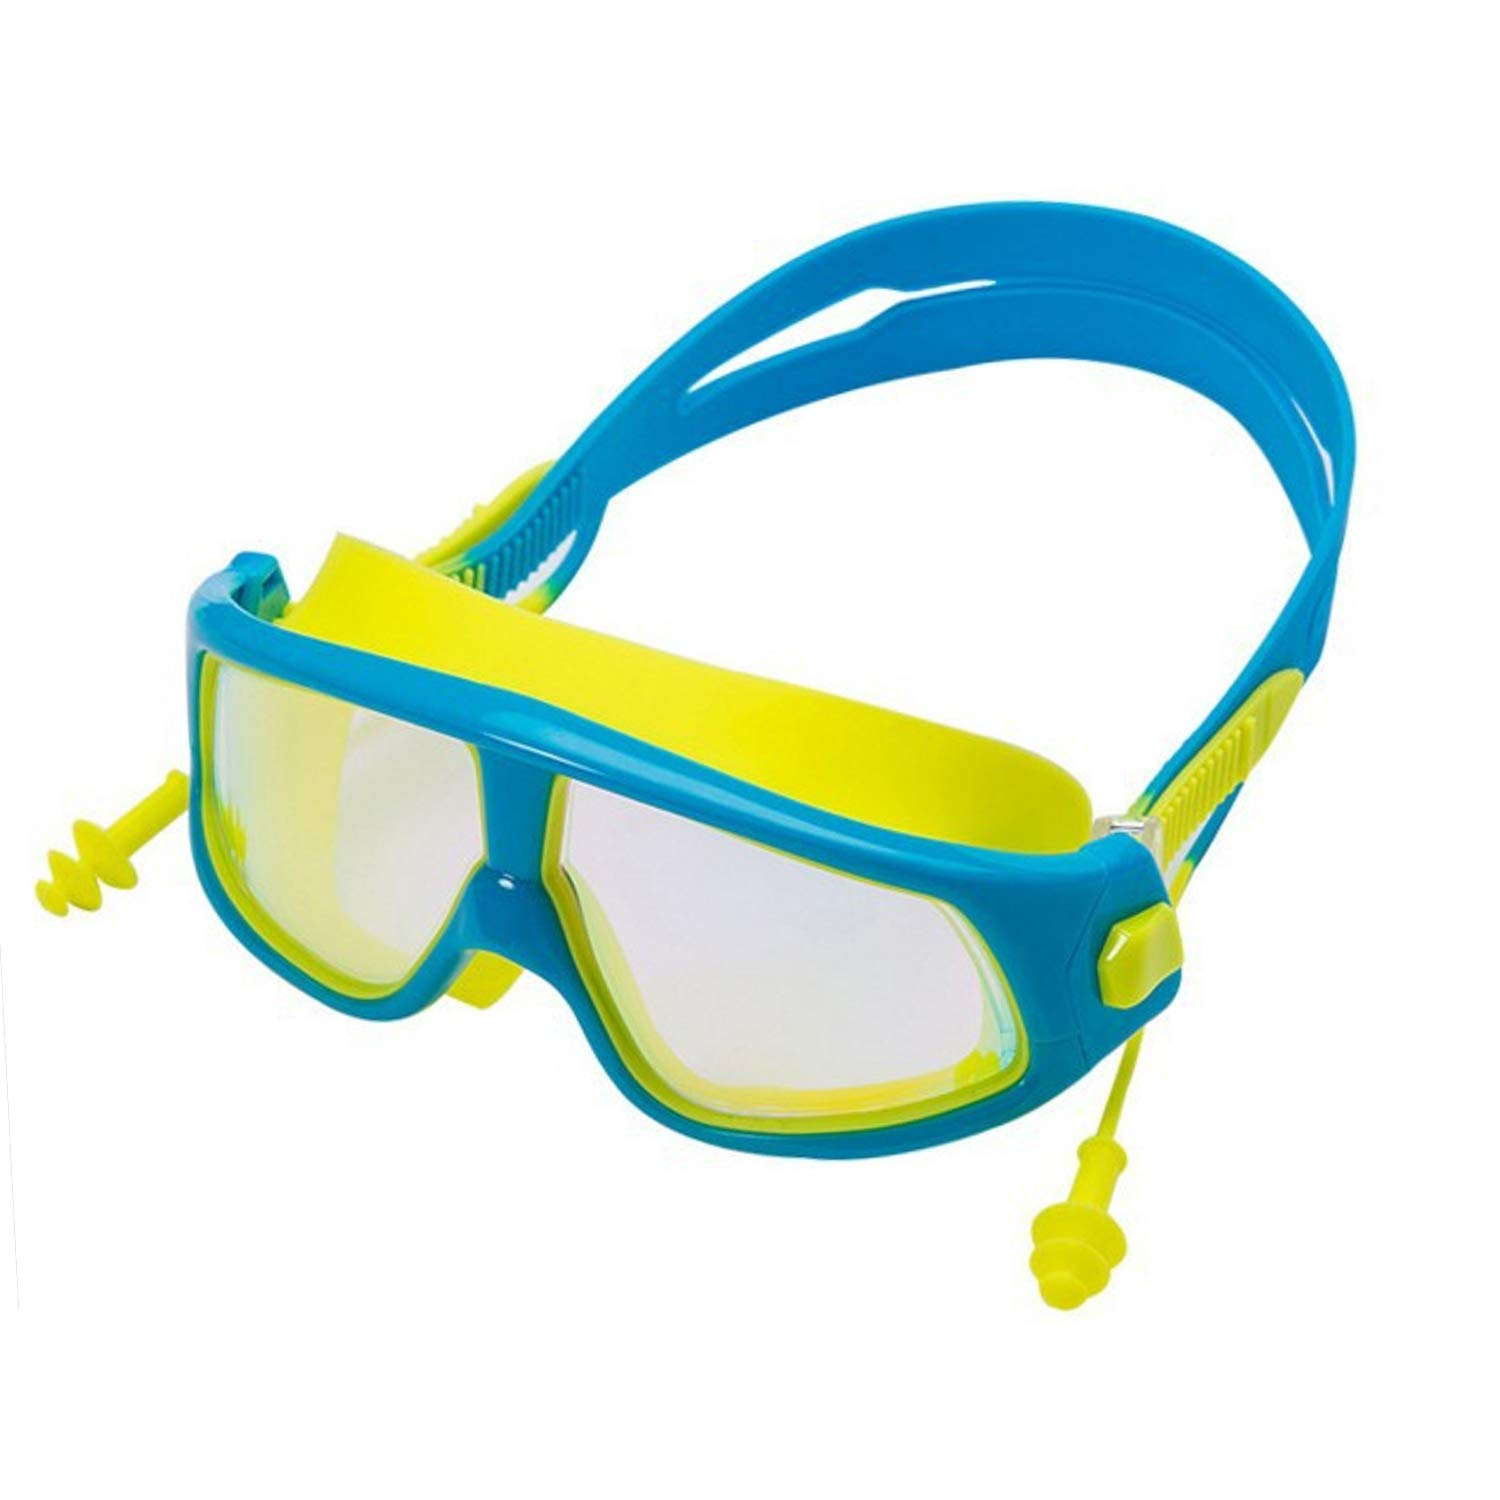 Kids Swim Goggles Mirrored Swimming Glasses for Children and Early Teens Kids Boys and Girls from 3 to 15 Years Old with Anti-Fog UV Protection Lenses